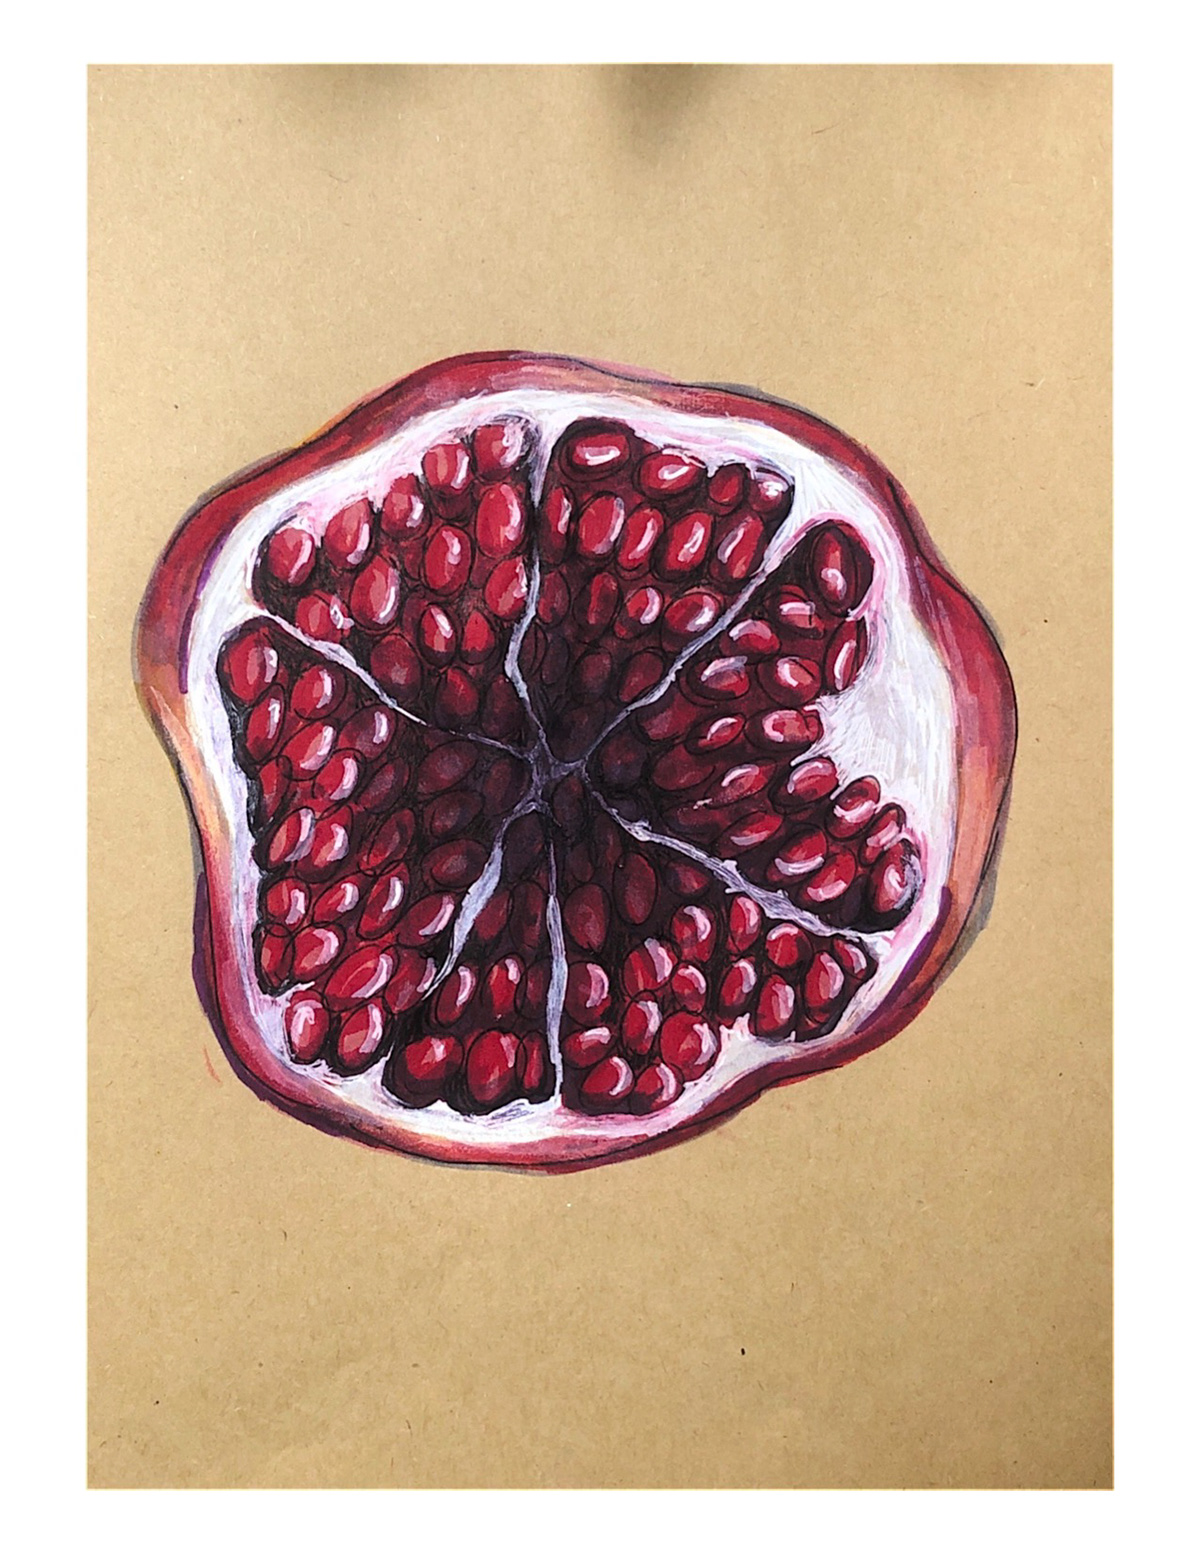 Image may contain: drawing and fruit